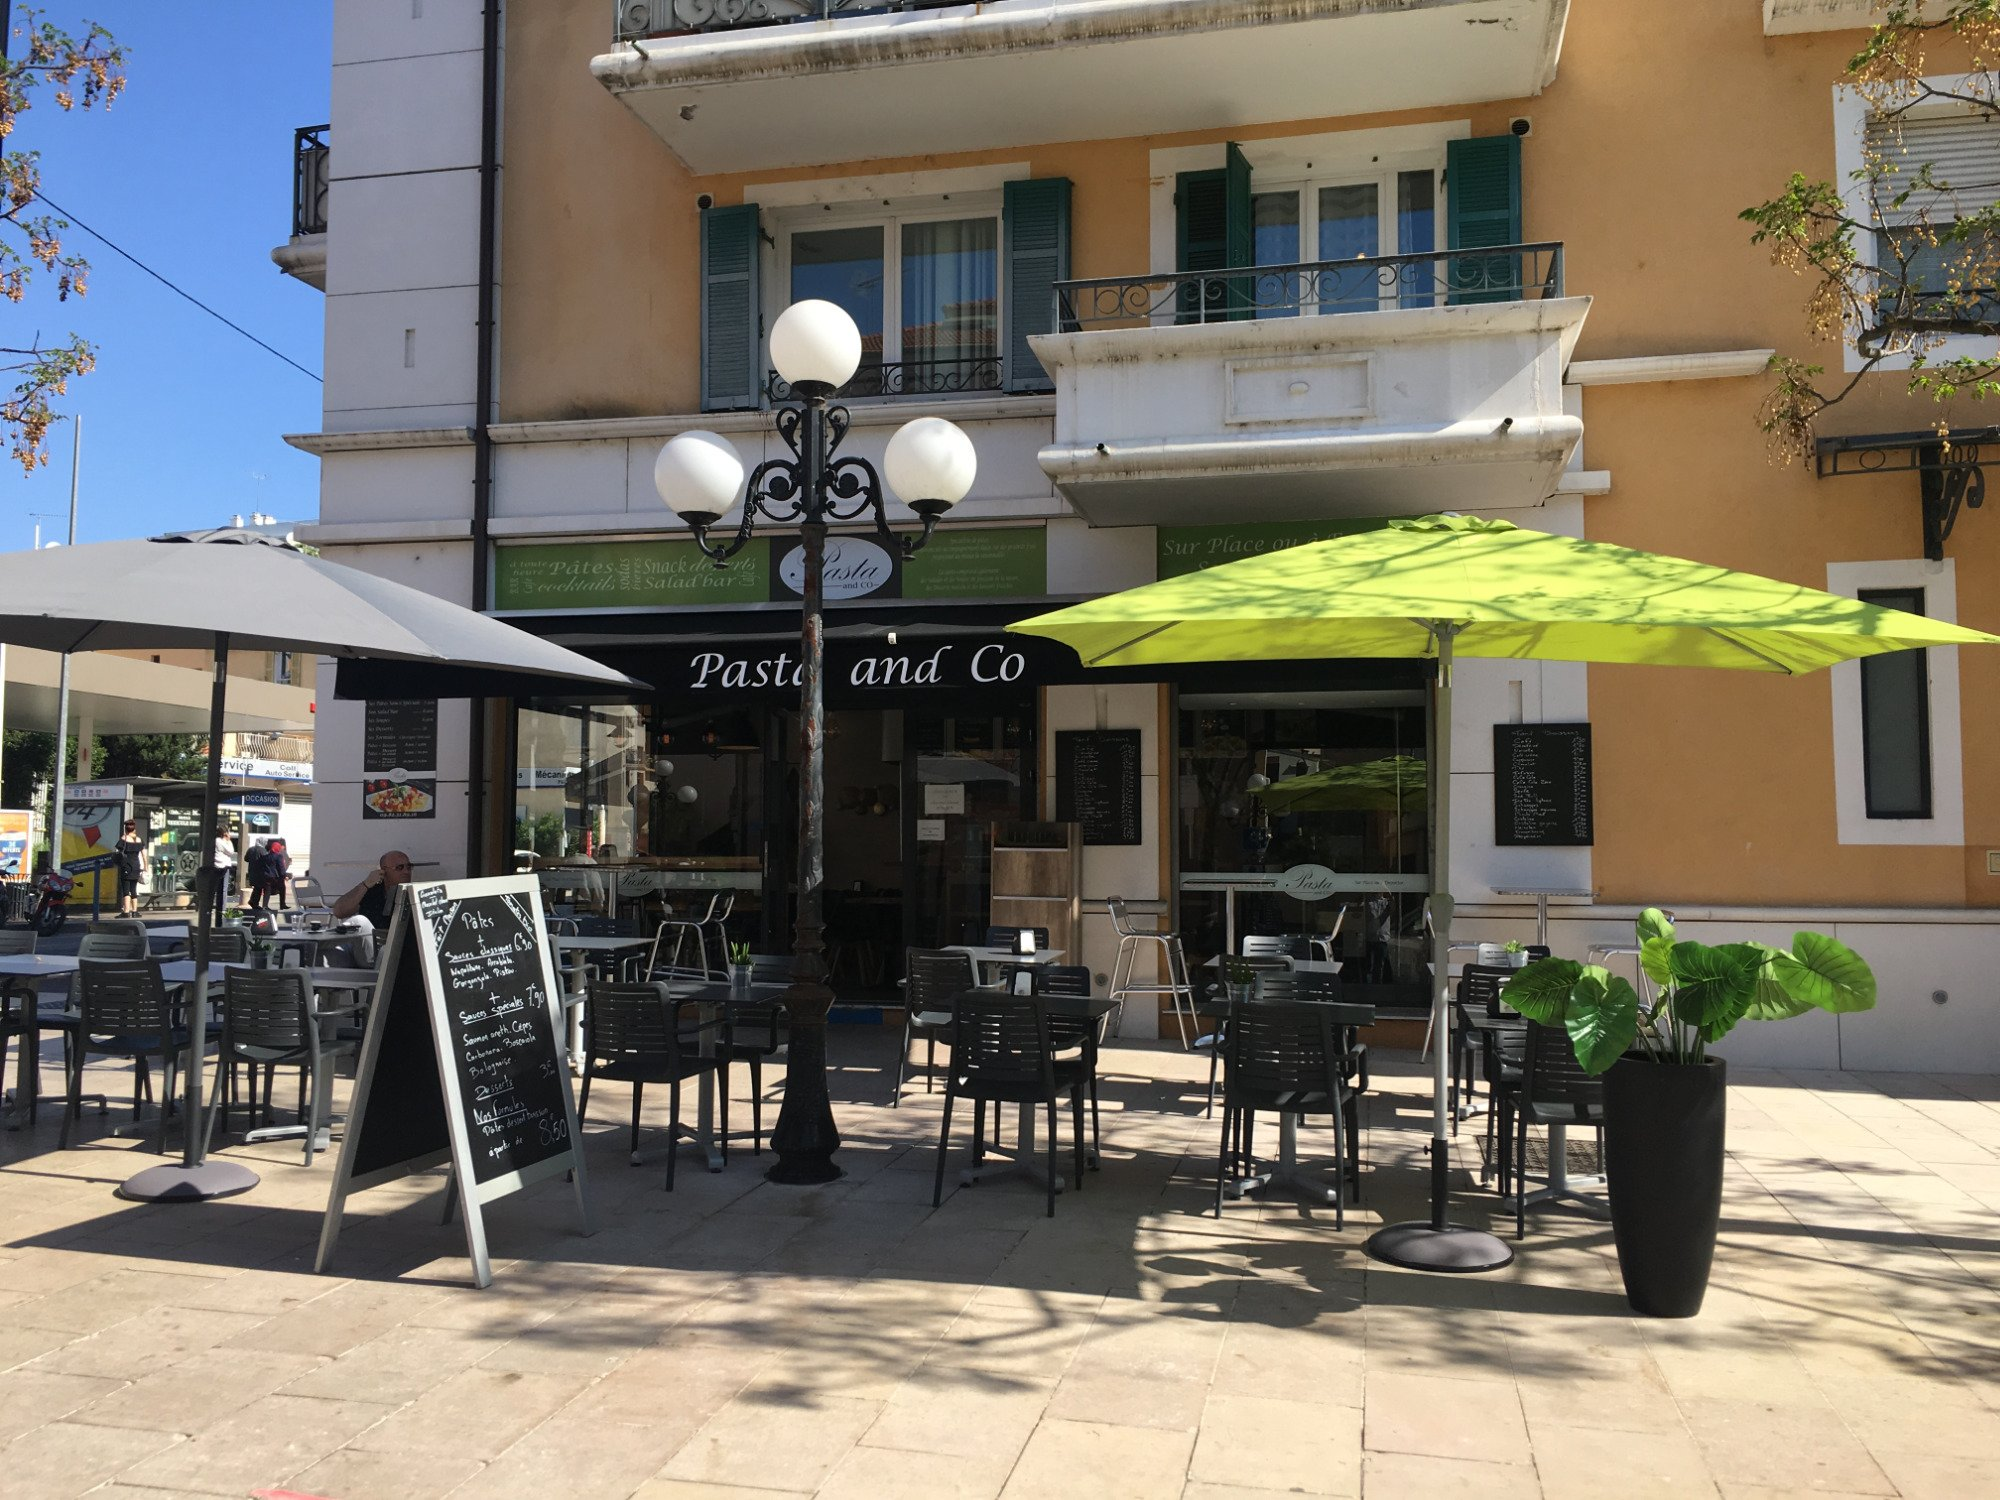 Pasta And Co, Cagnes-sur-Mer